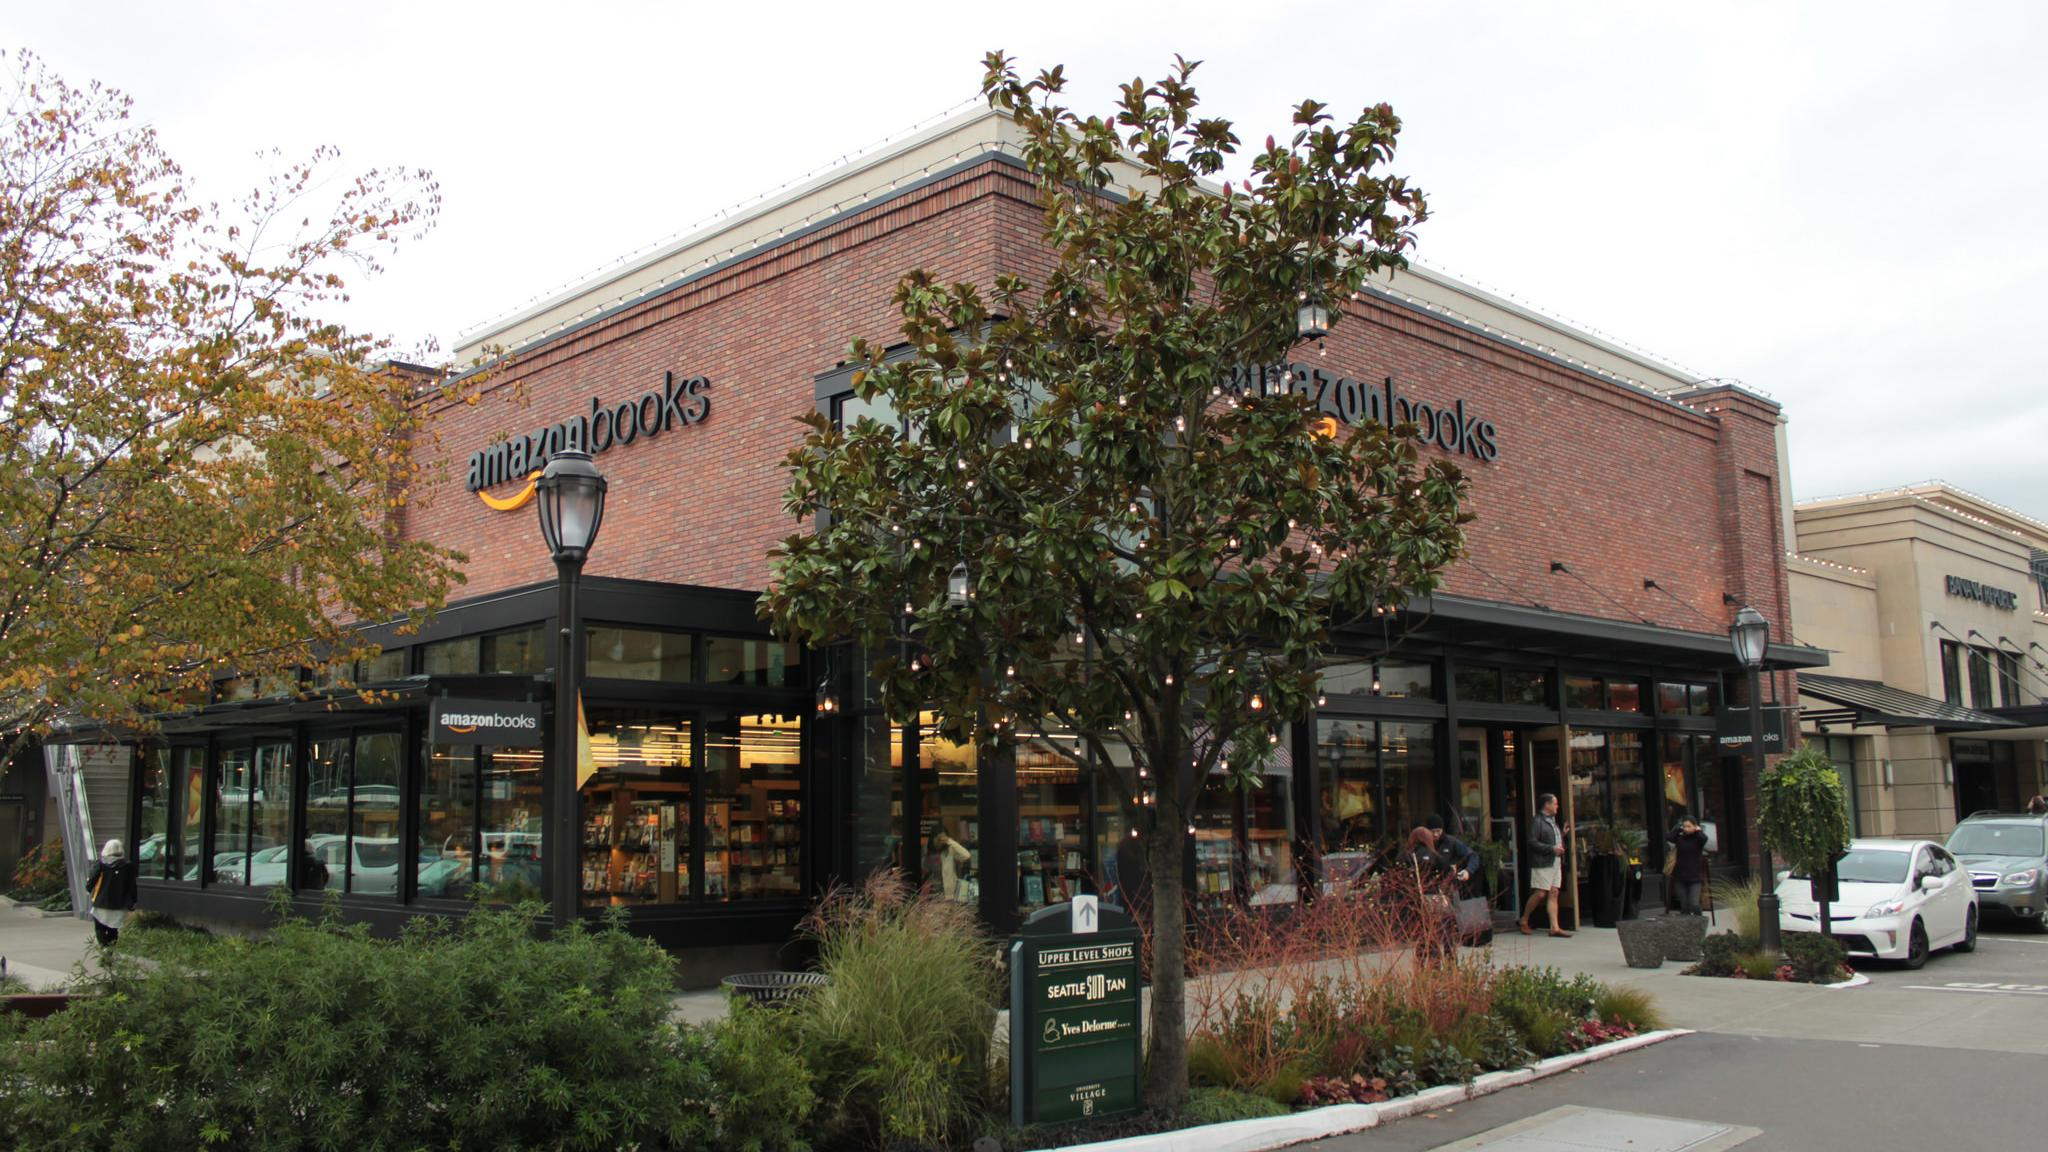 The Amazon Books retail store, the first physical outlet operated by online retailer Amazon.com, at the U Village shopping center in Seattle, Washington. (SounderBruce / Flickr)